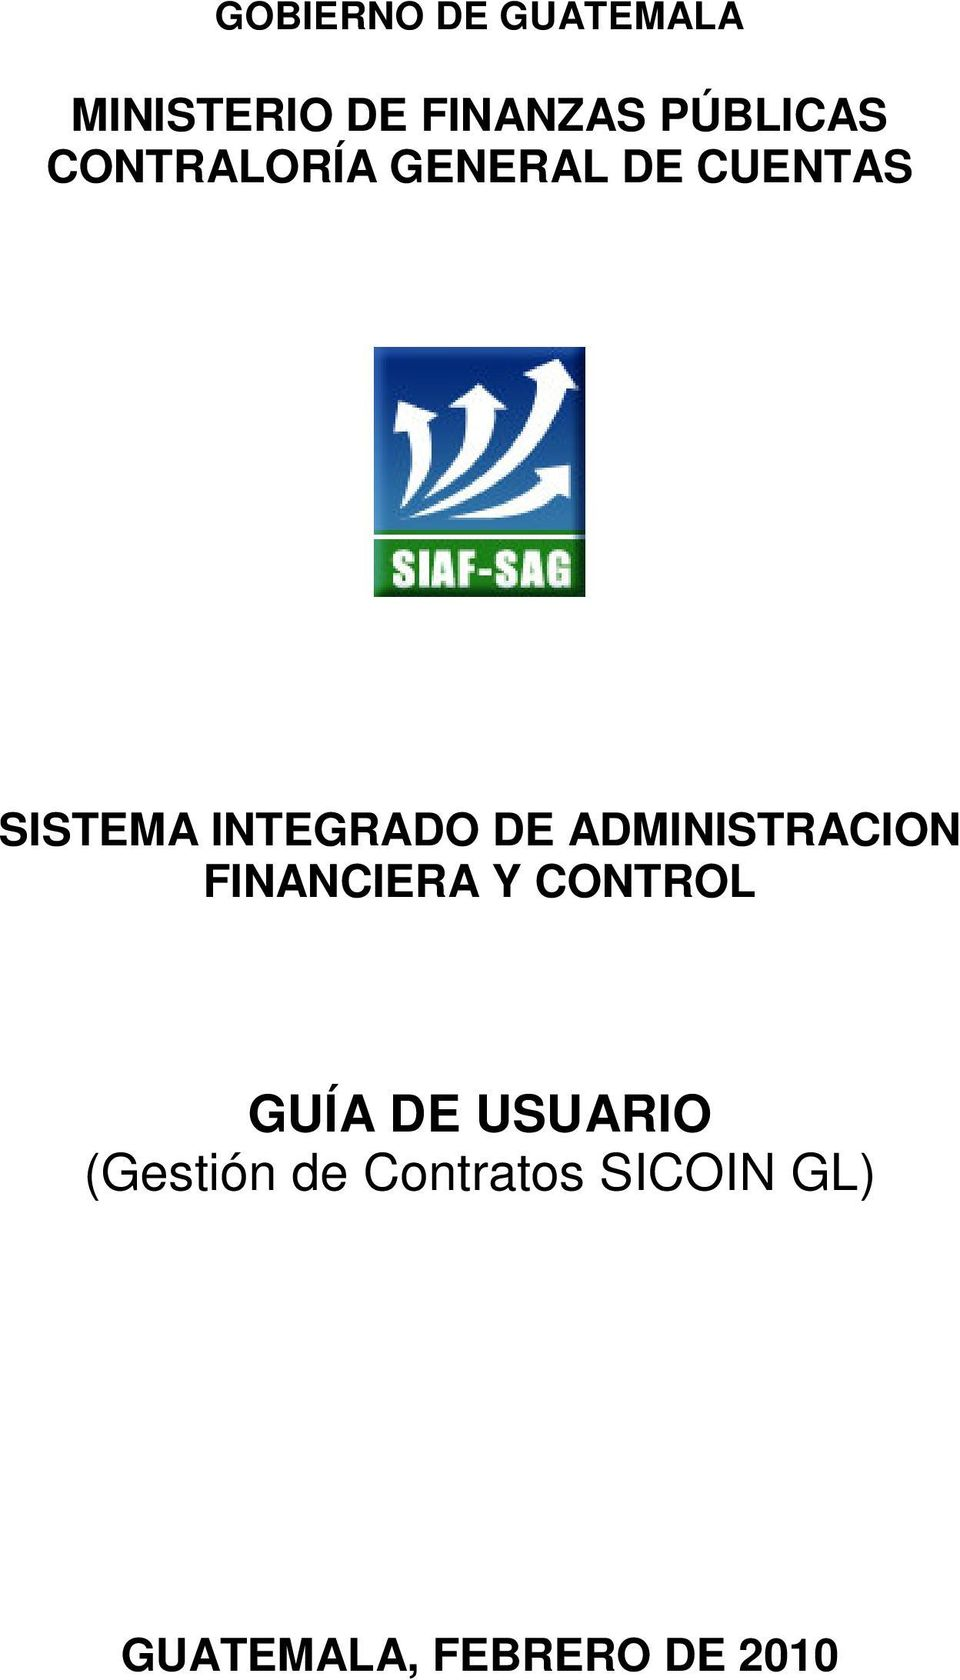 SISTEMA INTEGRADO DE ADMINISTRACION FINANCIERA